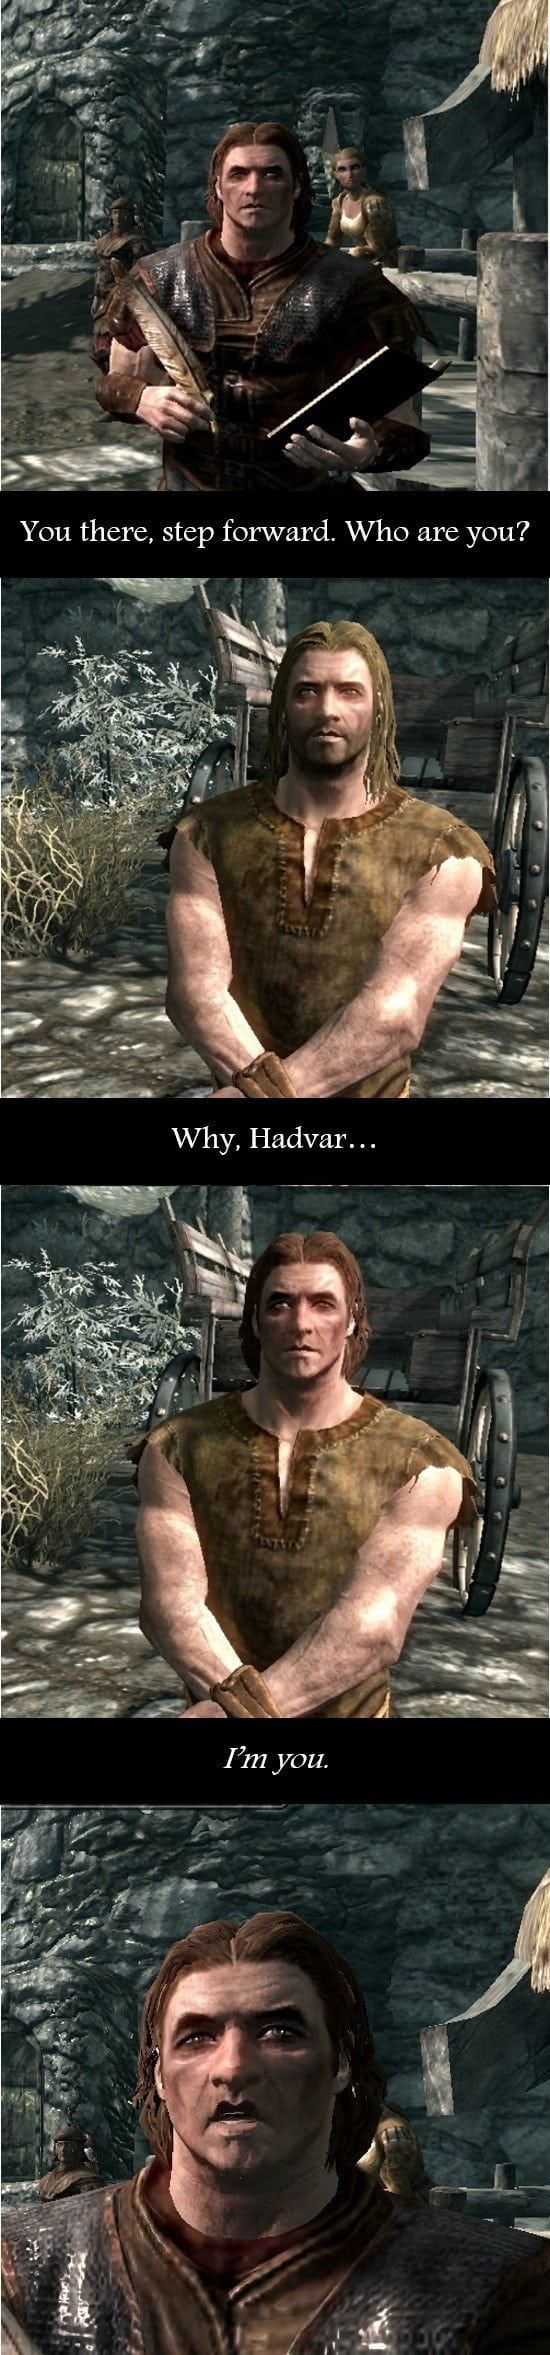 Hey have you ever played skyrim i have some memes for ya